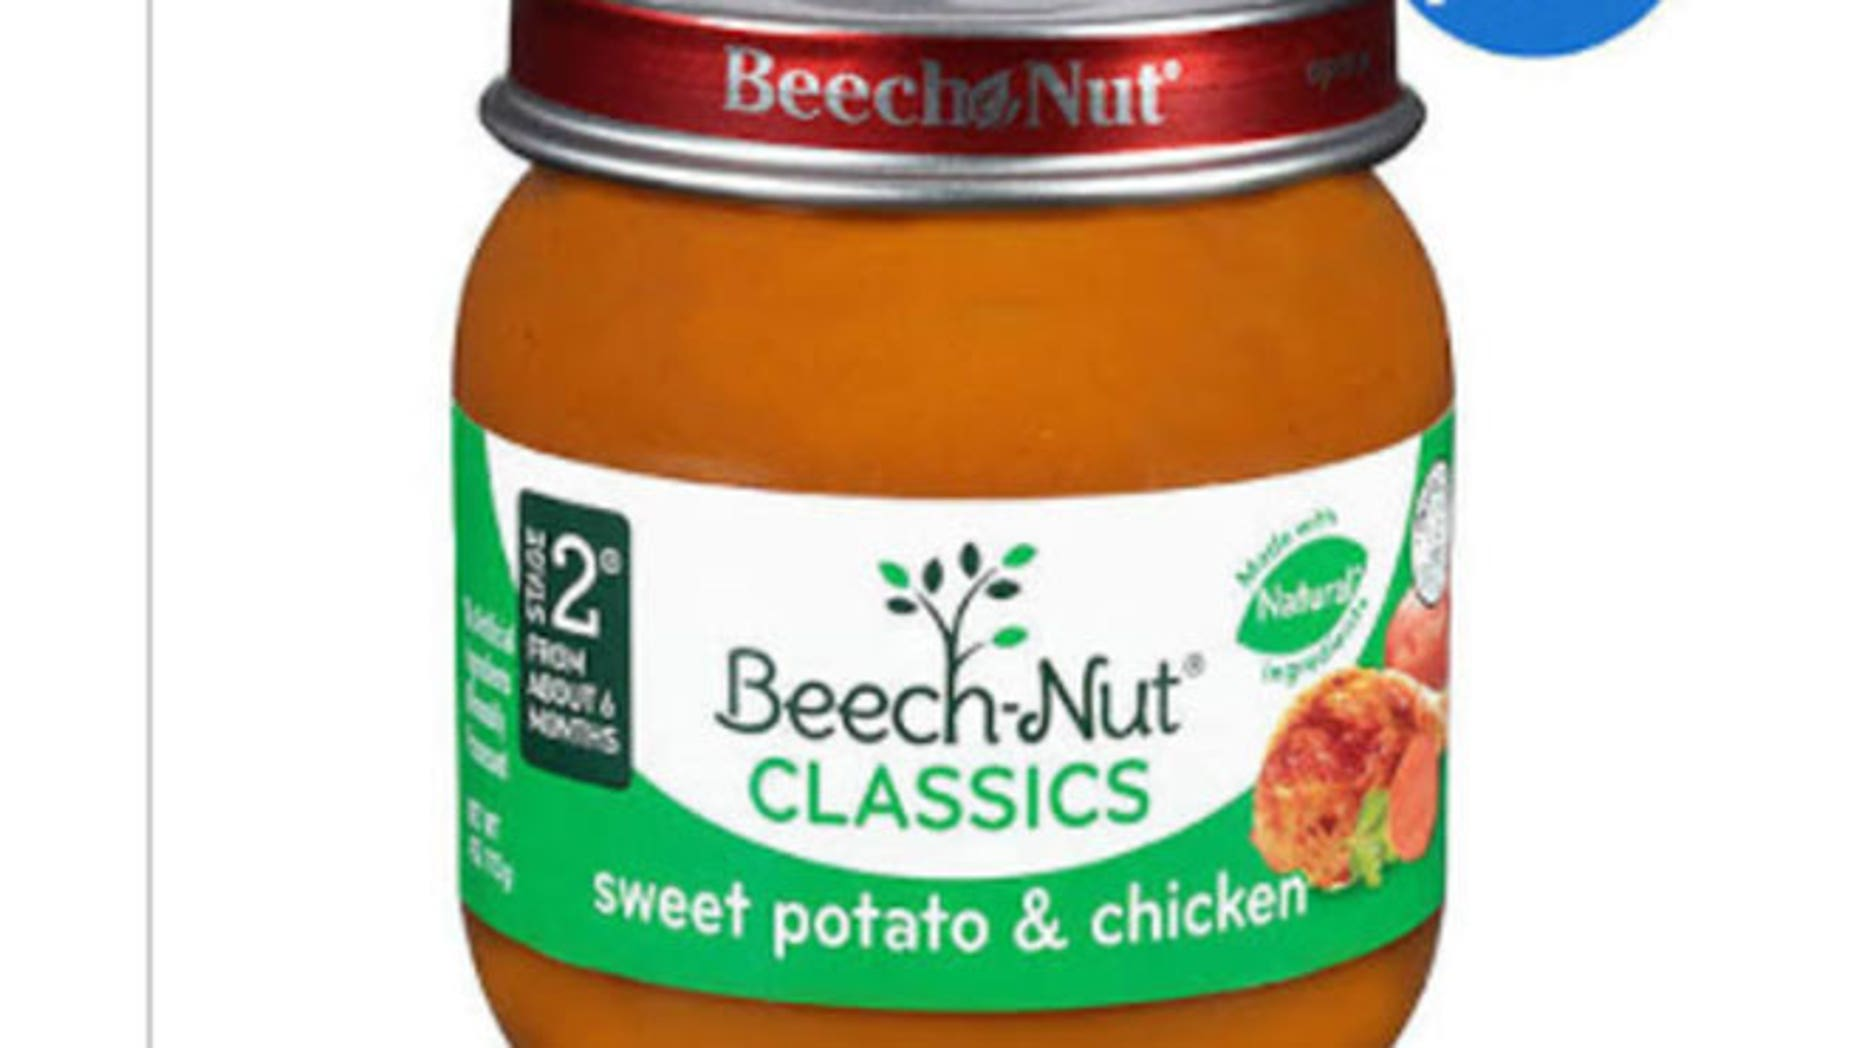 """Four-ounce glass jars labeled """"Stage 2 Beech-Nut CLASSICS sweet potato & chicken"""" is the variety at risk of contamination. The potentially affected products were produced Dec. 12, 2014 and expire in December 2016."""